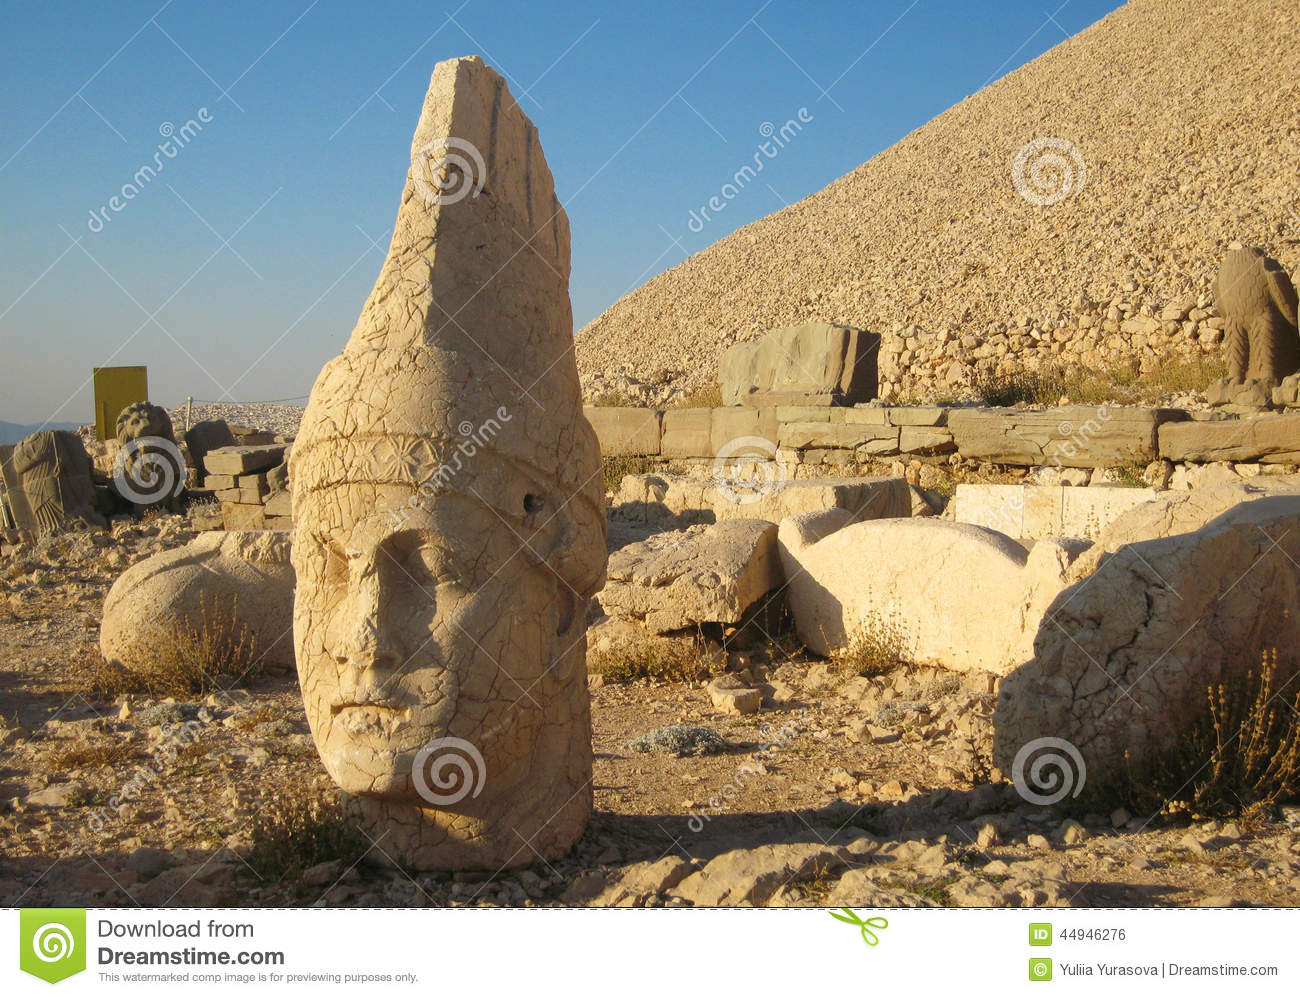 Nemrut Dagı Milli Parki, Mount Nemrut with ancient statues heads og the king anf Gods